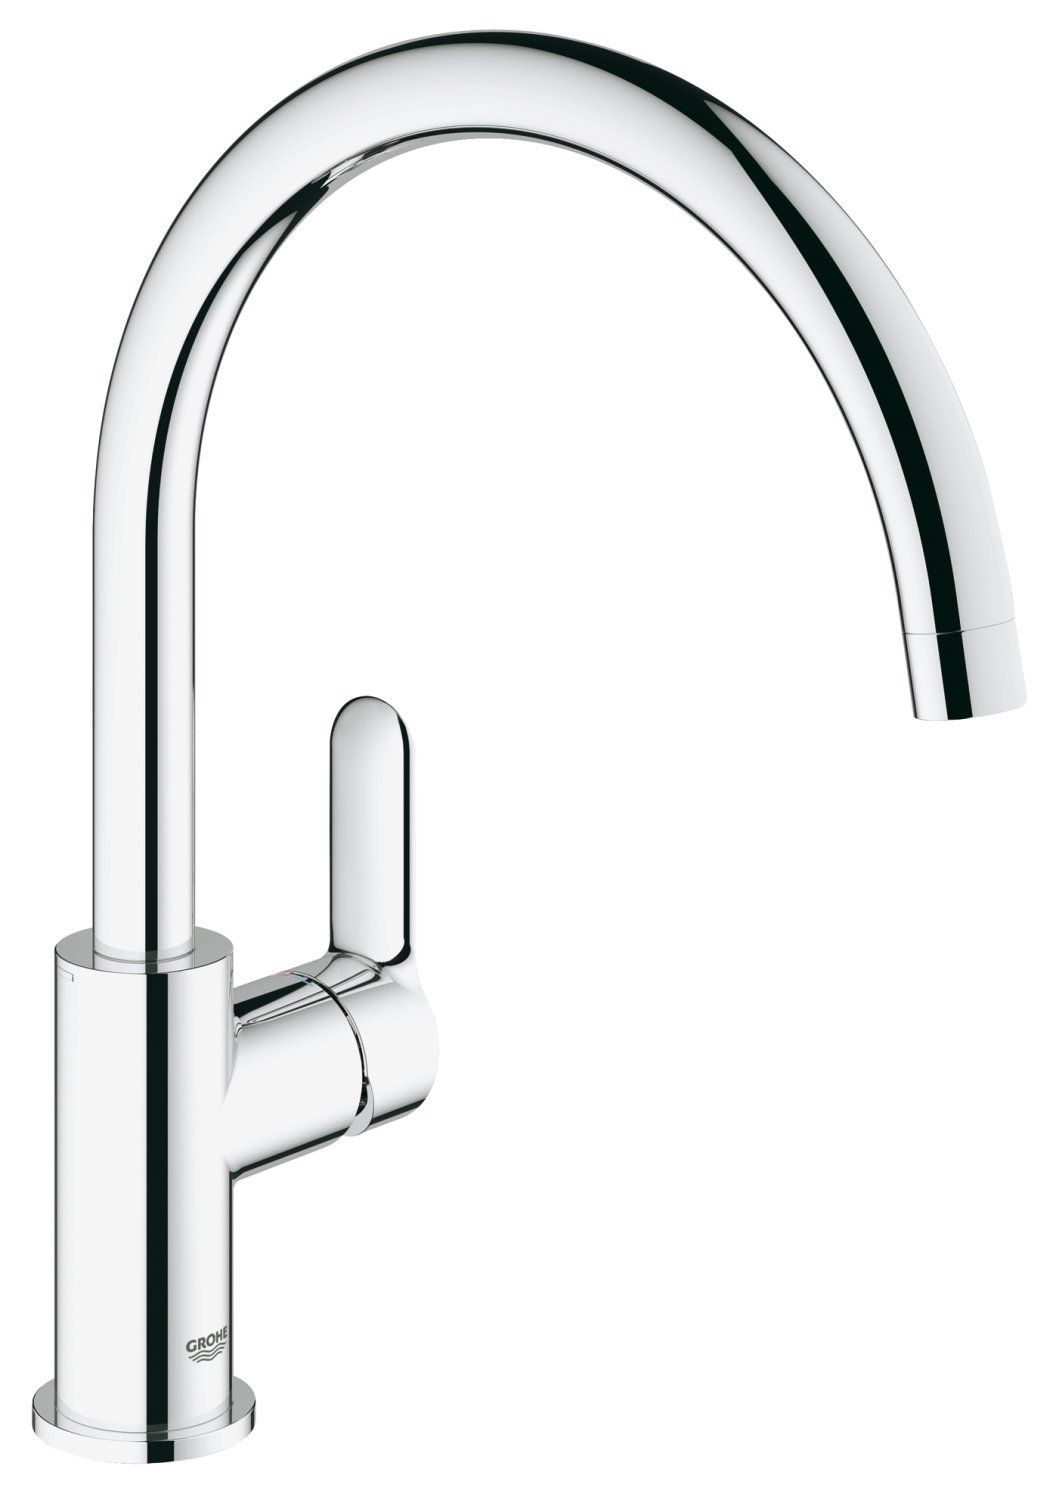 F. GROHE GRO31369000 Start Edge Mixer for Sink Unit: Amazon.co.uk ...